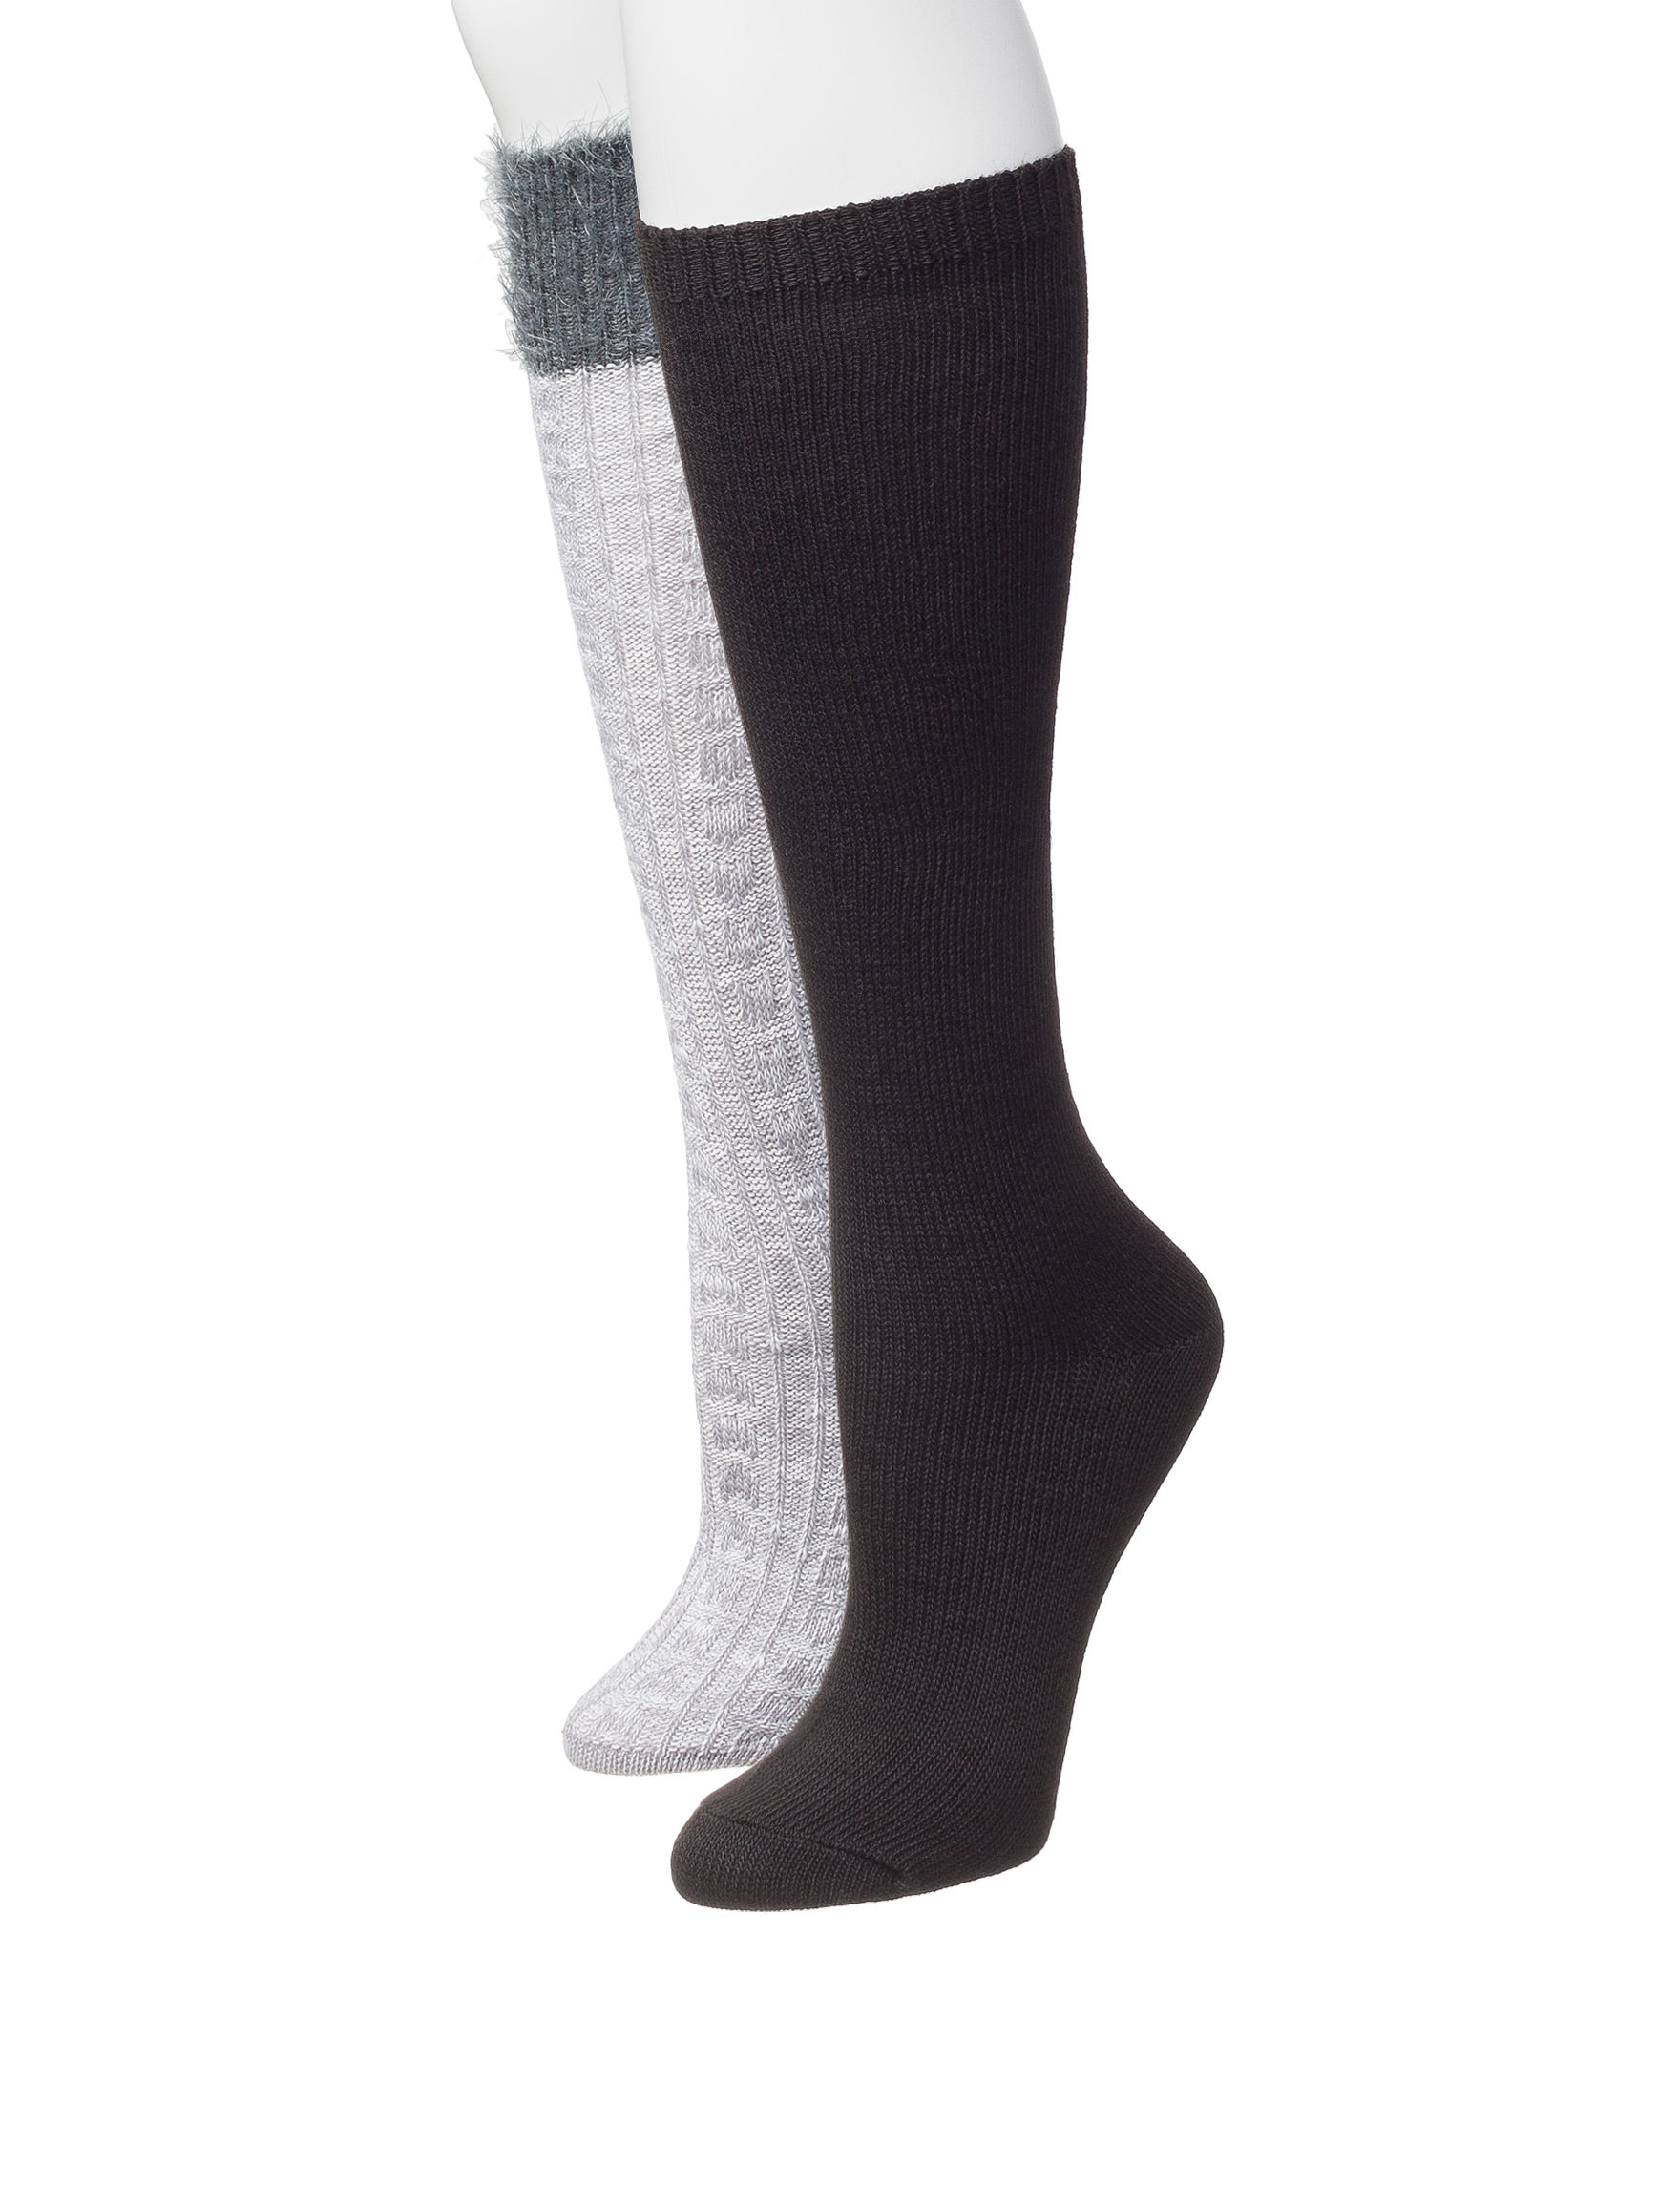 Signature Studio Grey Socks